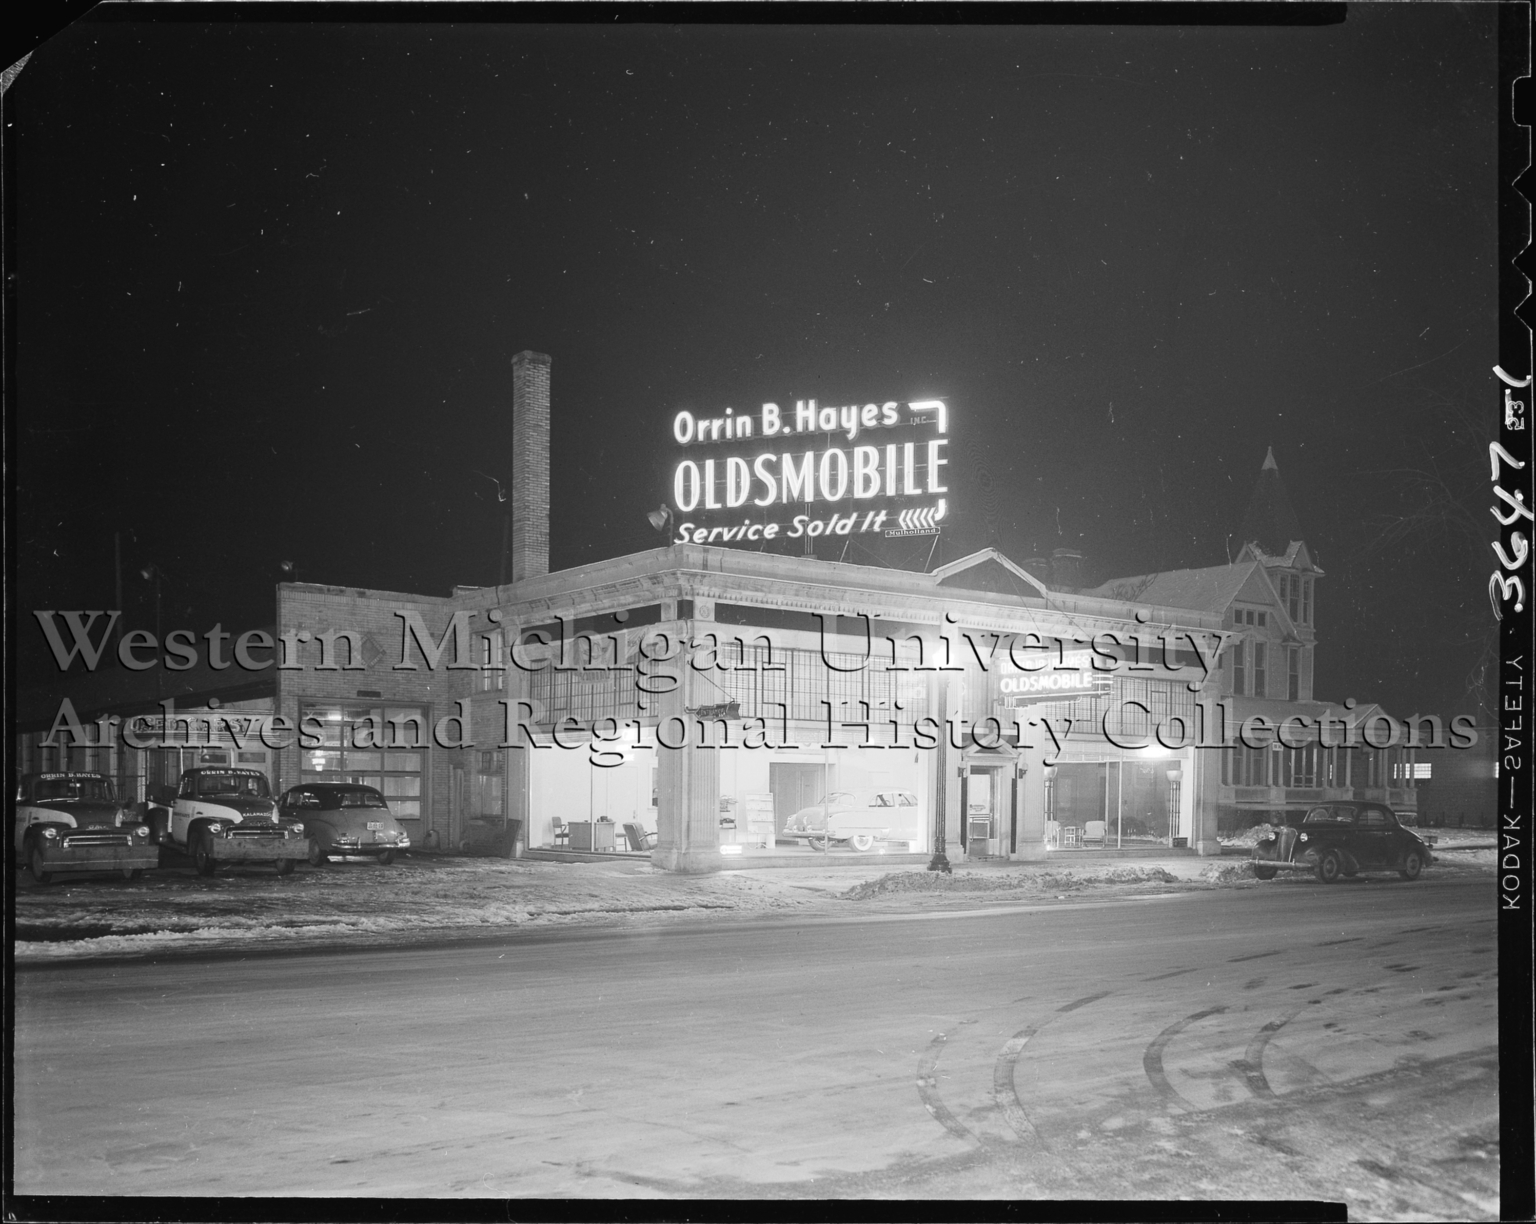 Orrin B. Hayes Oldsmobile dealership, exterior, at night, neon sign